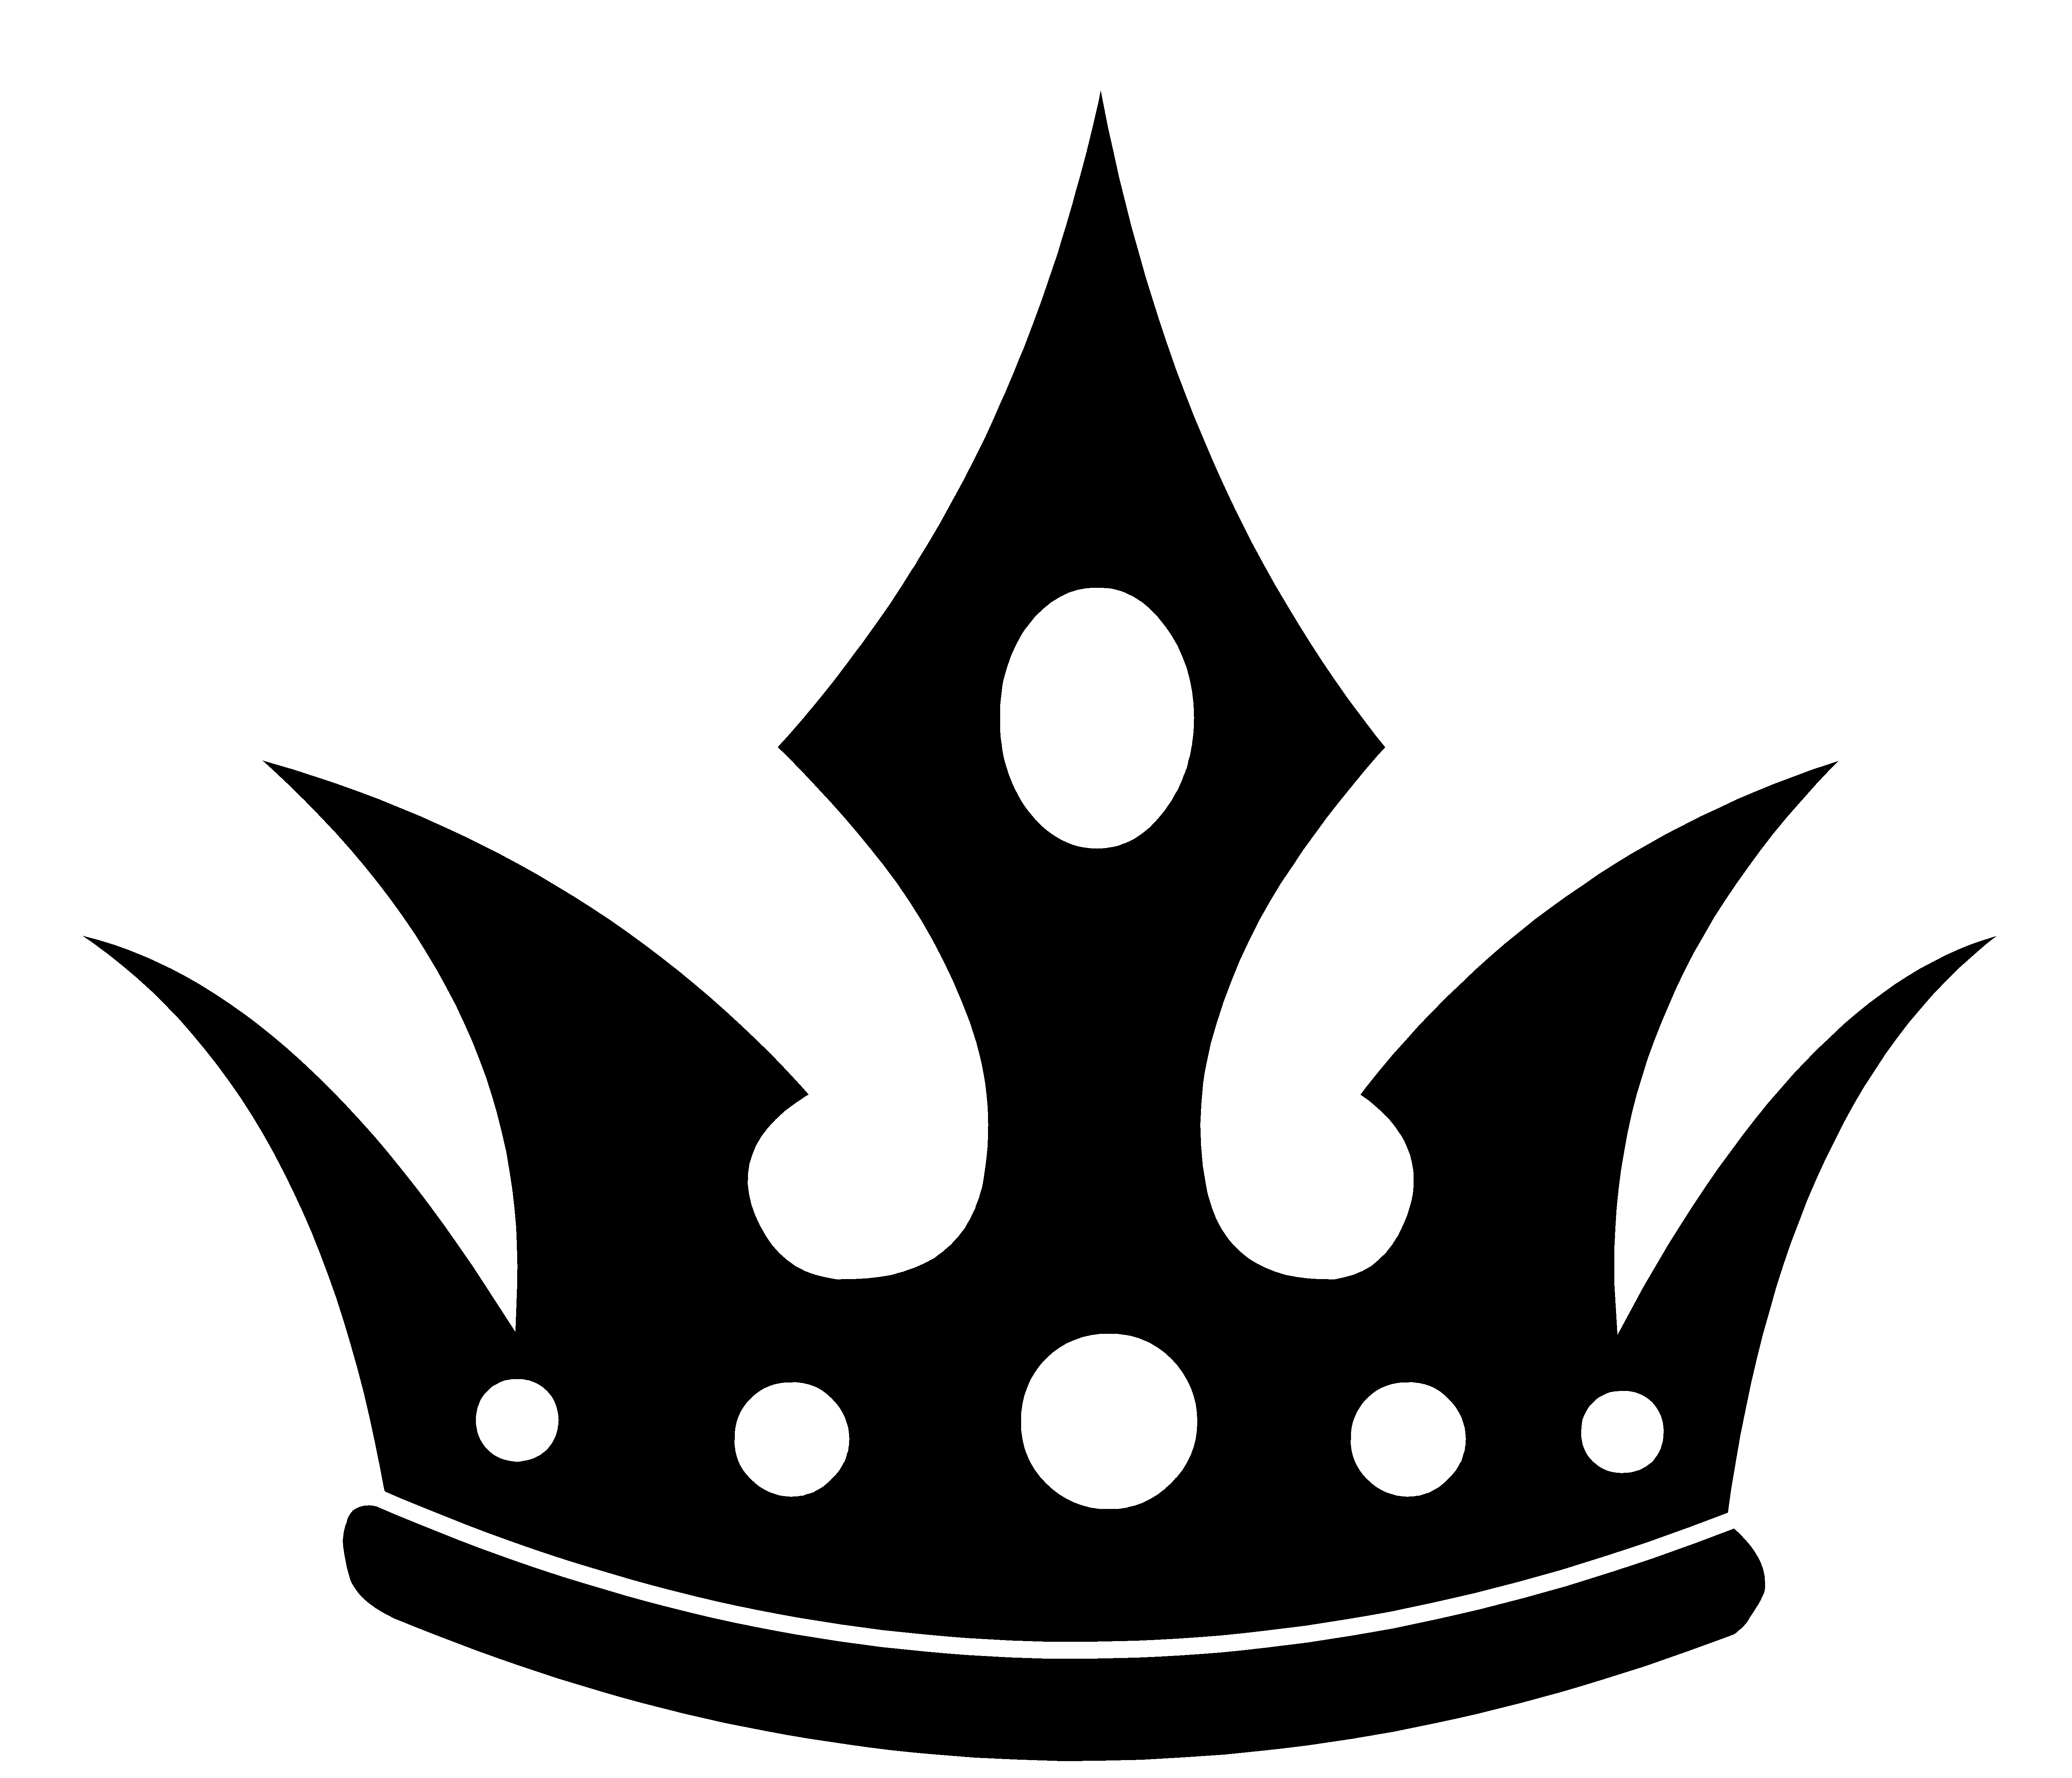 King Crown Silhouette - ClipArt Best